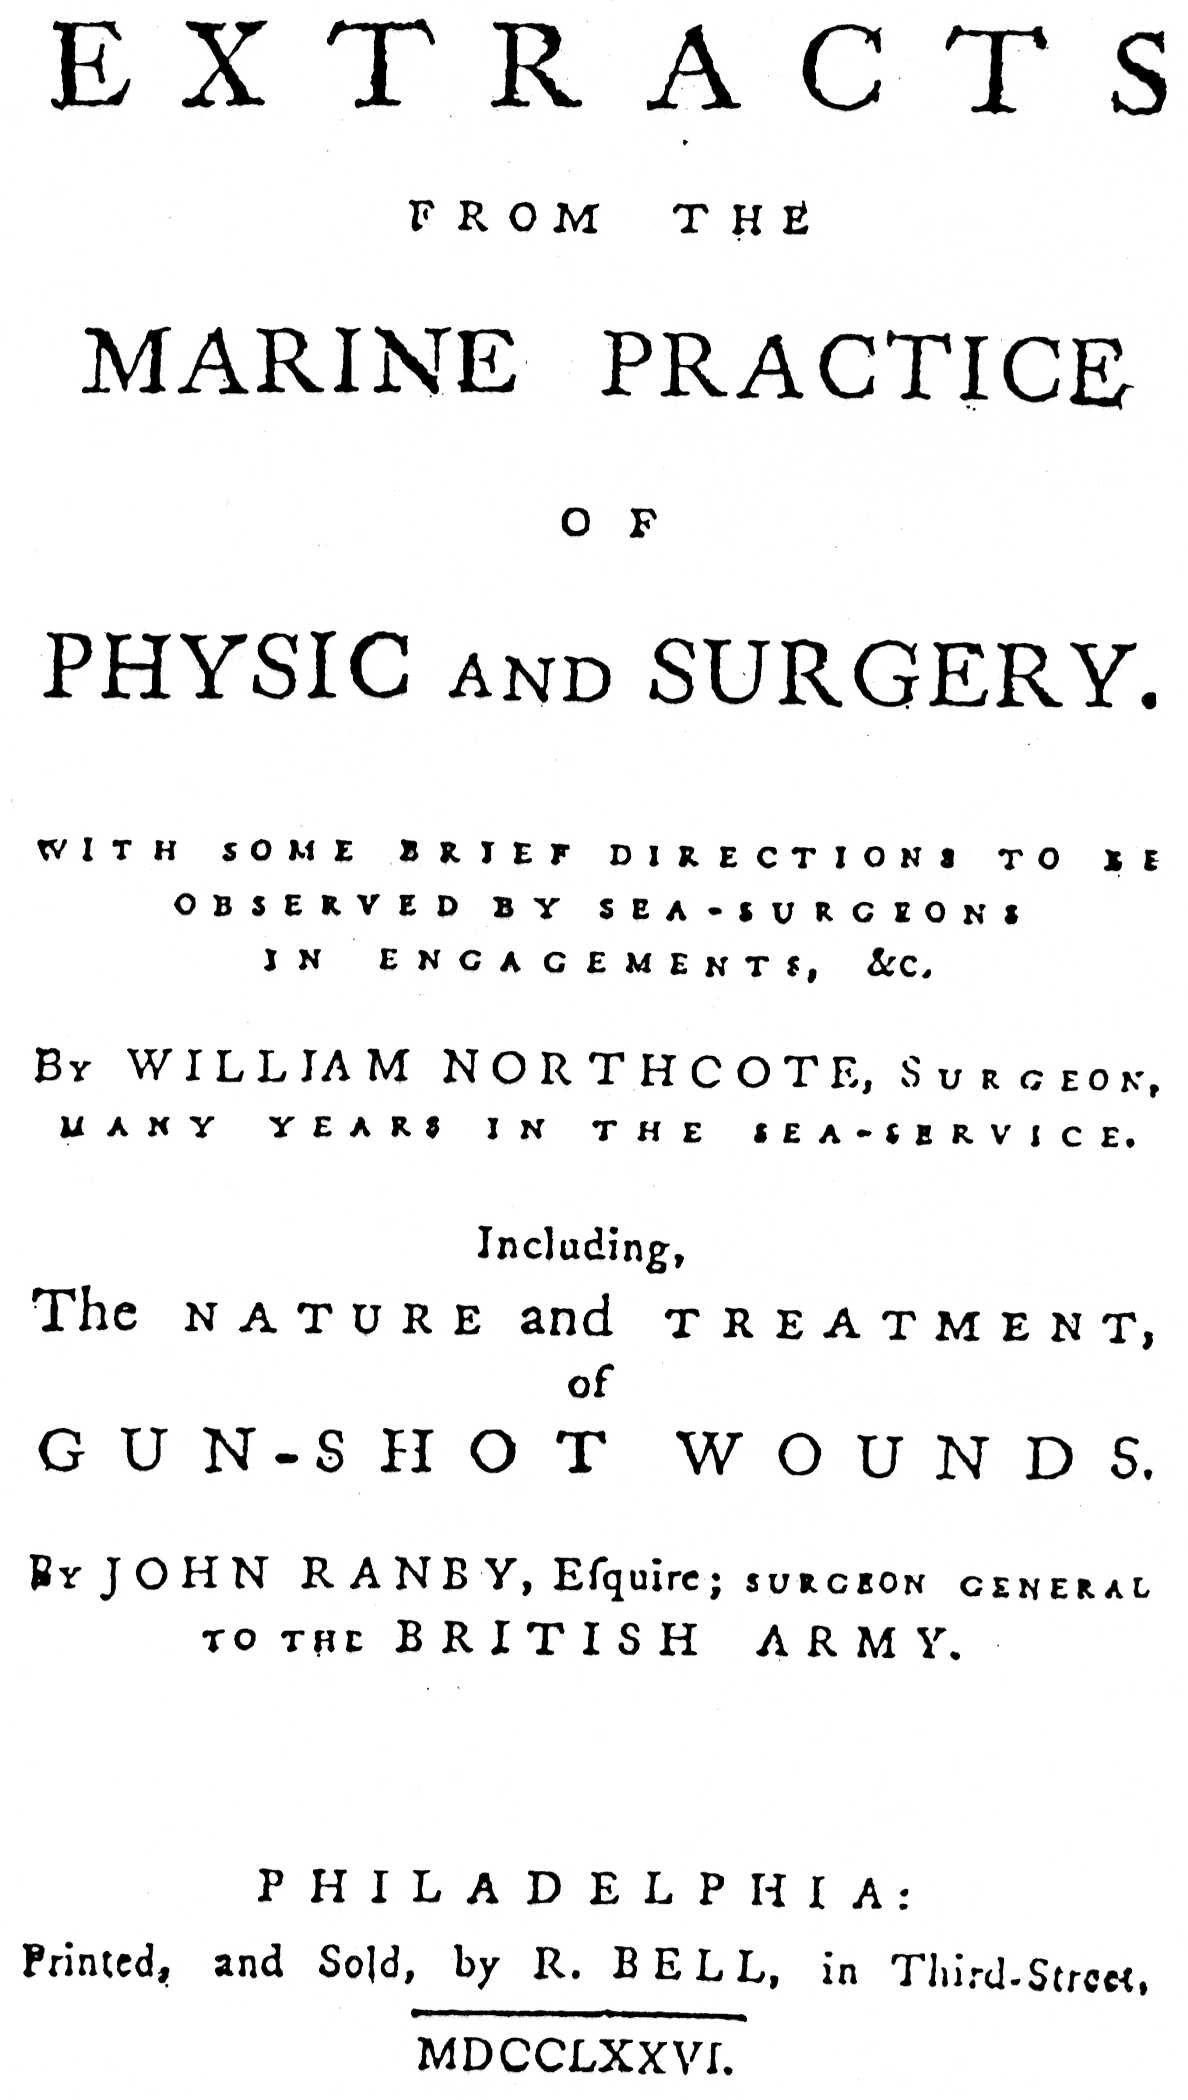 Extracts from the Marine Practice of Physik and Surgery, Including the Nature and Treatment of Gunshot Wounds